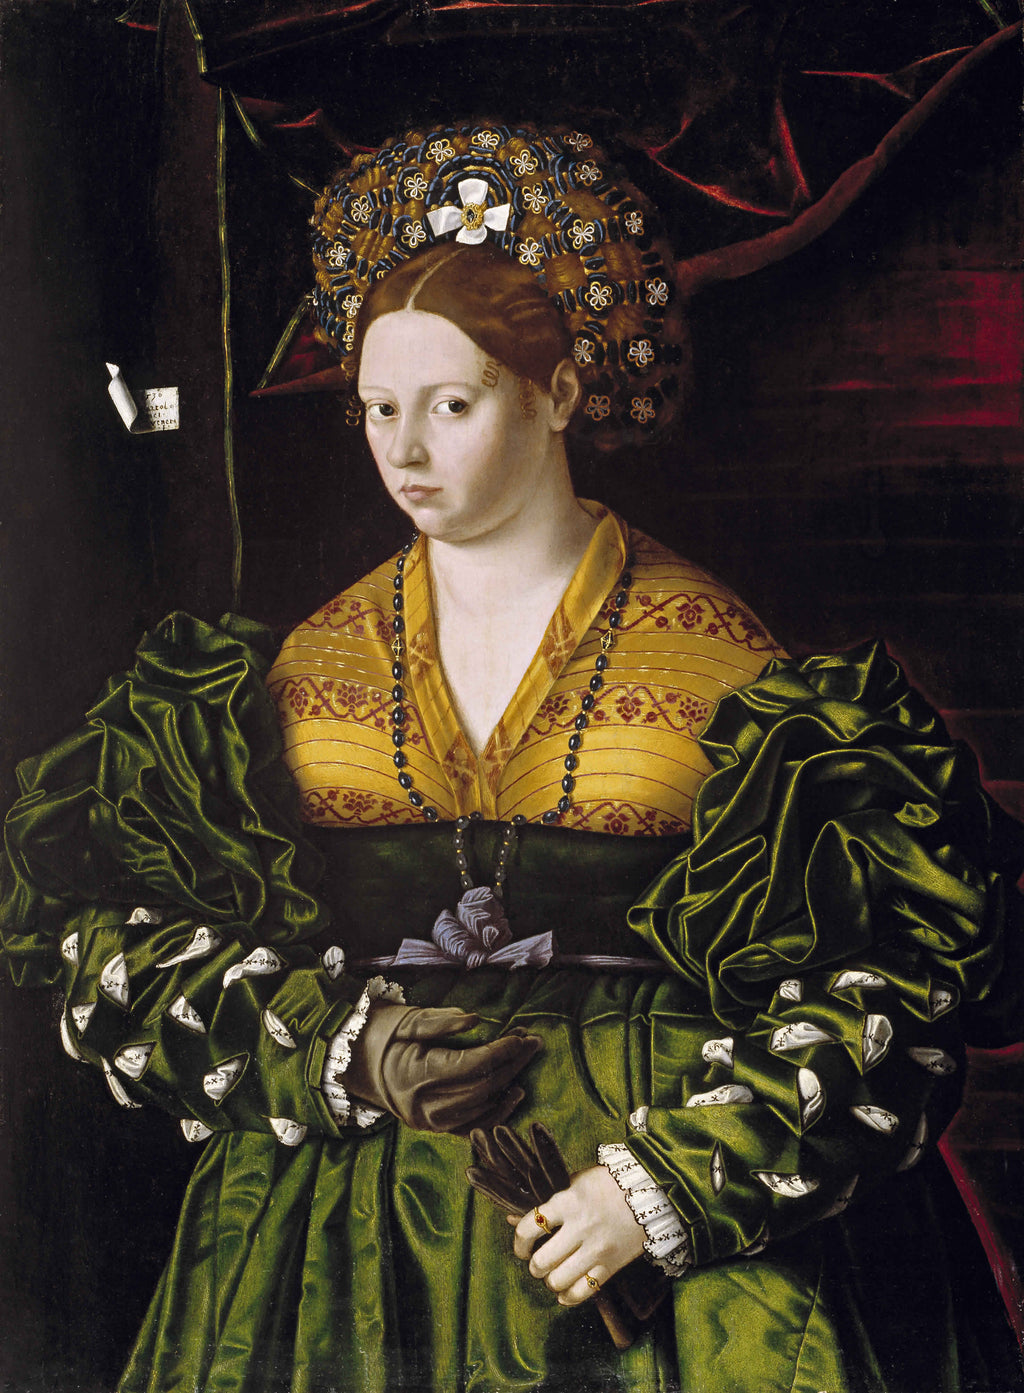 Portrait of a Lady in a Green Dress